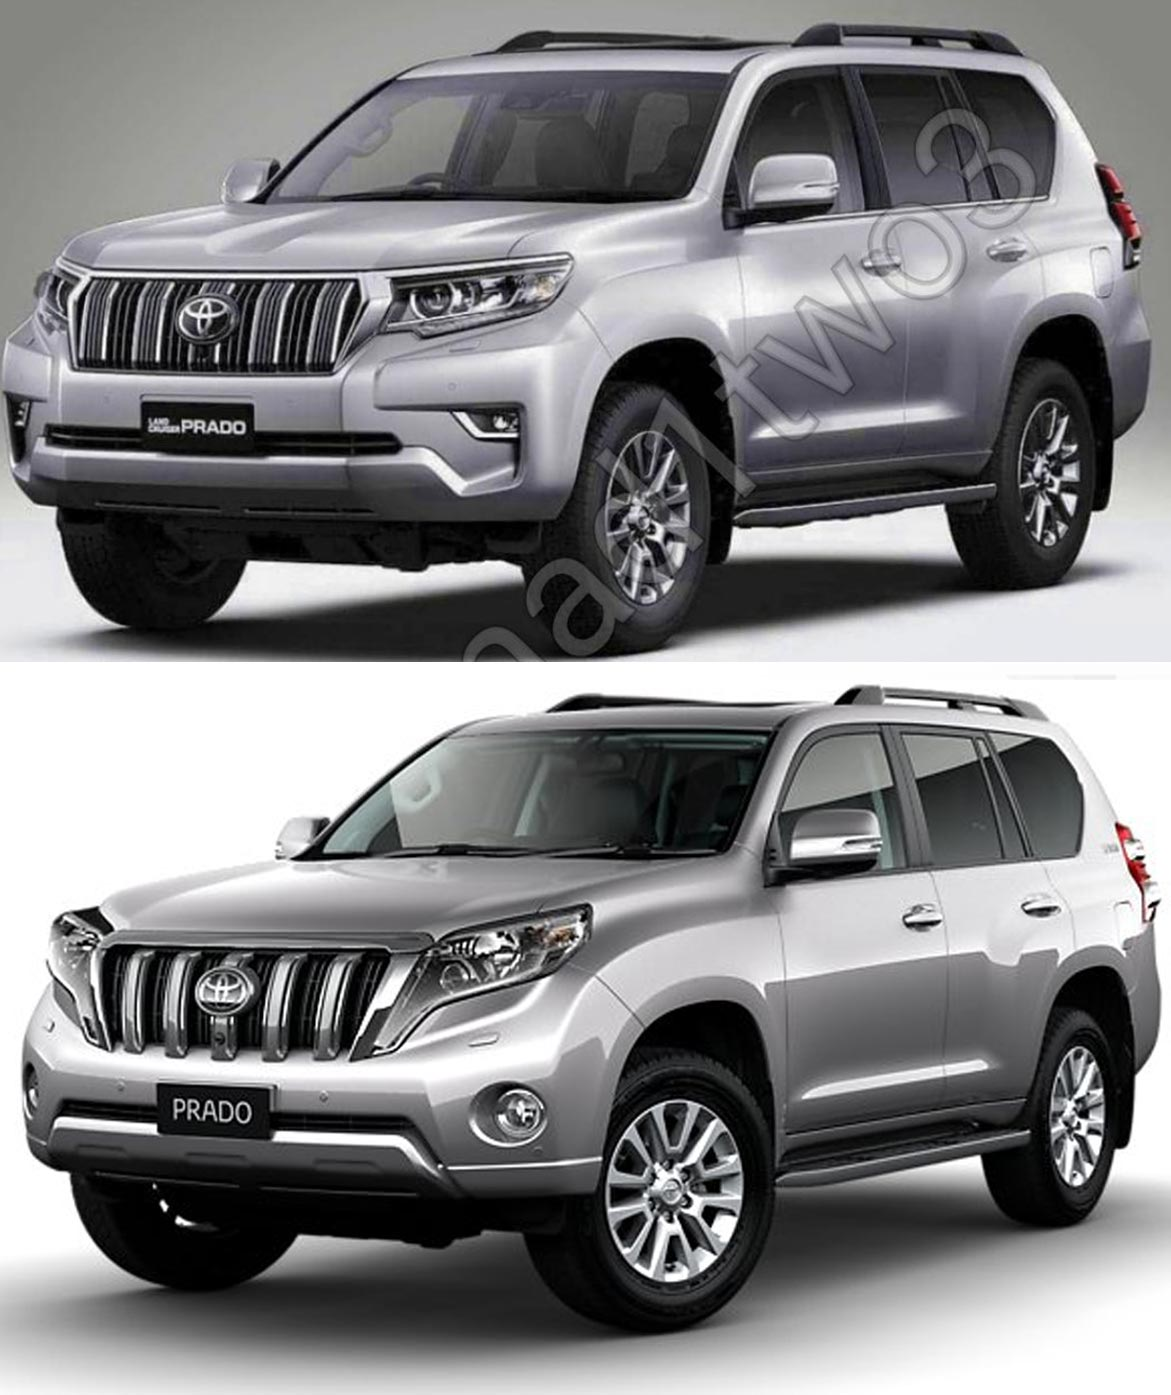 2018 toyota land cruiser prado vs 2014 toyota land. Black Bedroom Furniture Sets. Home Design Ideas